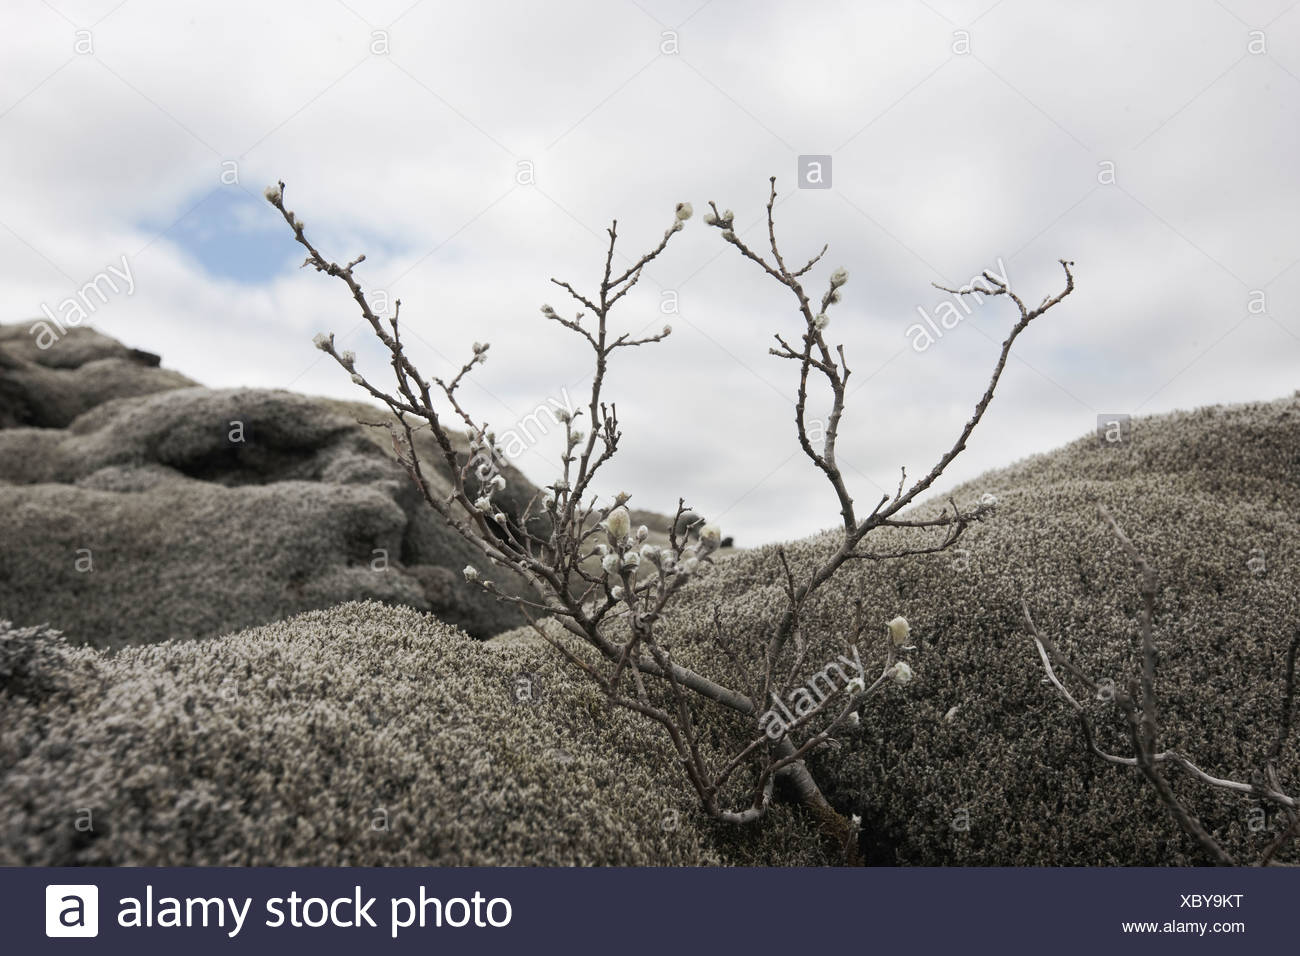 Bare tree among lava rocks - Stock Image